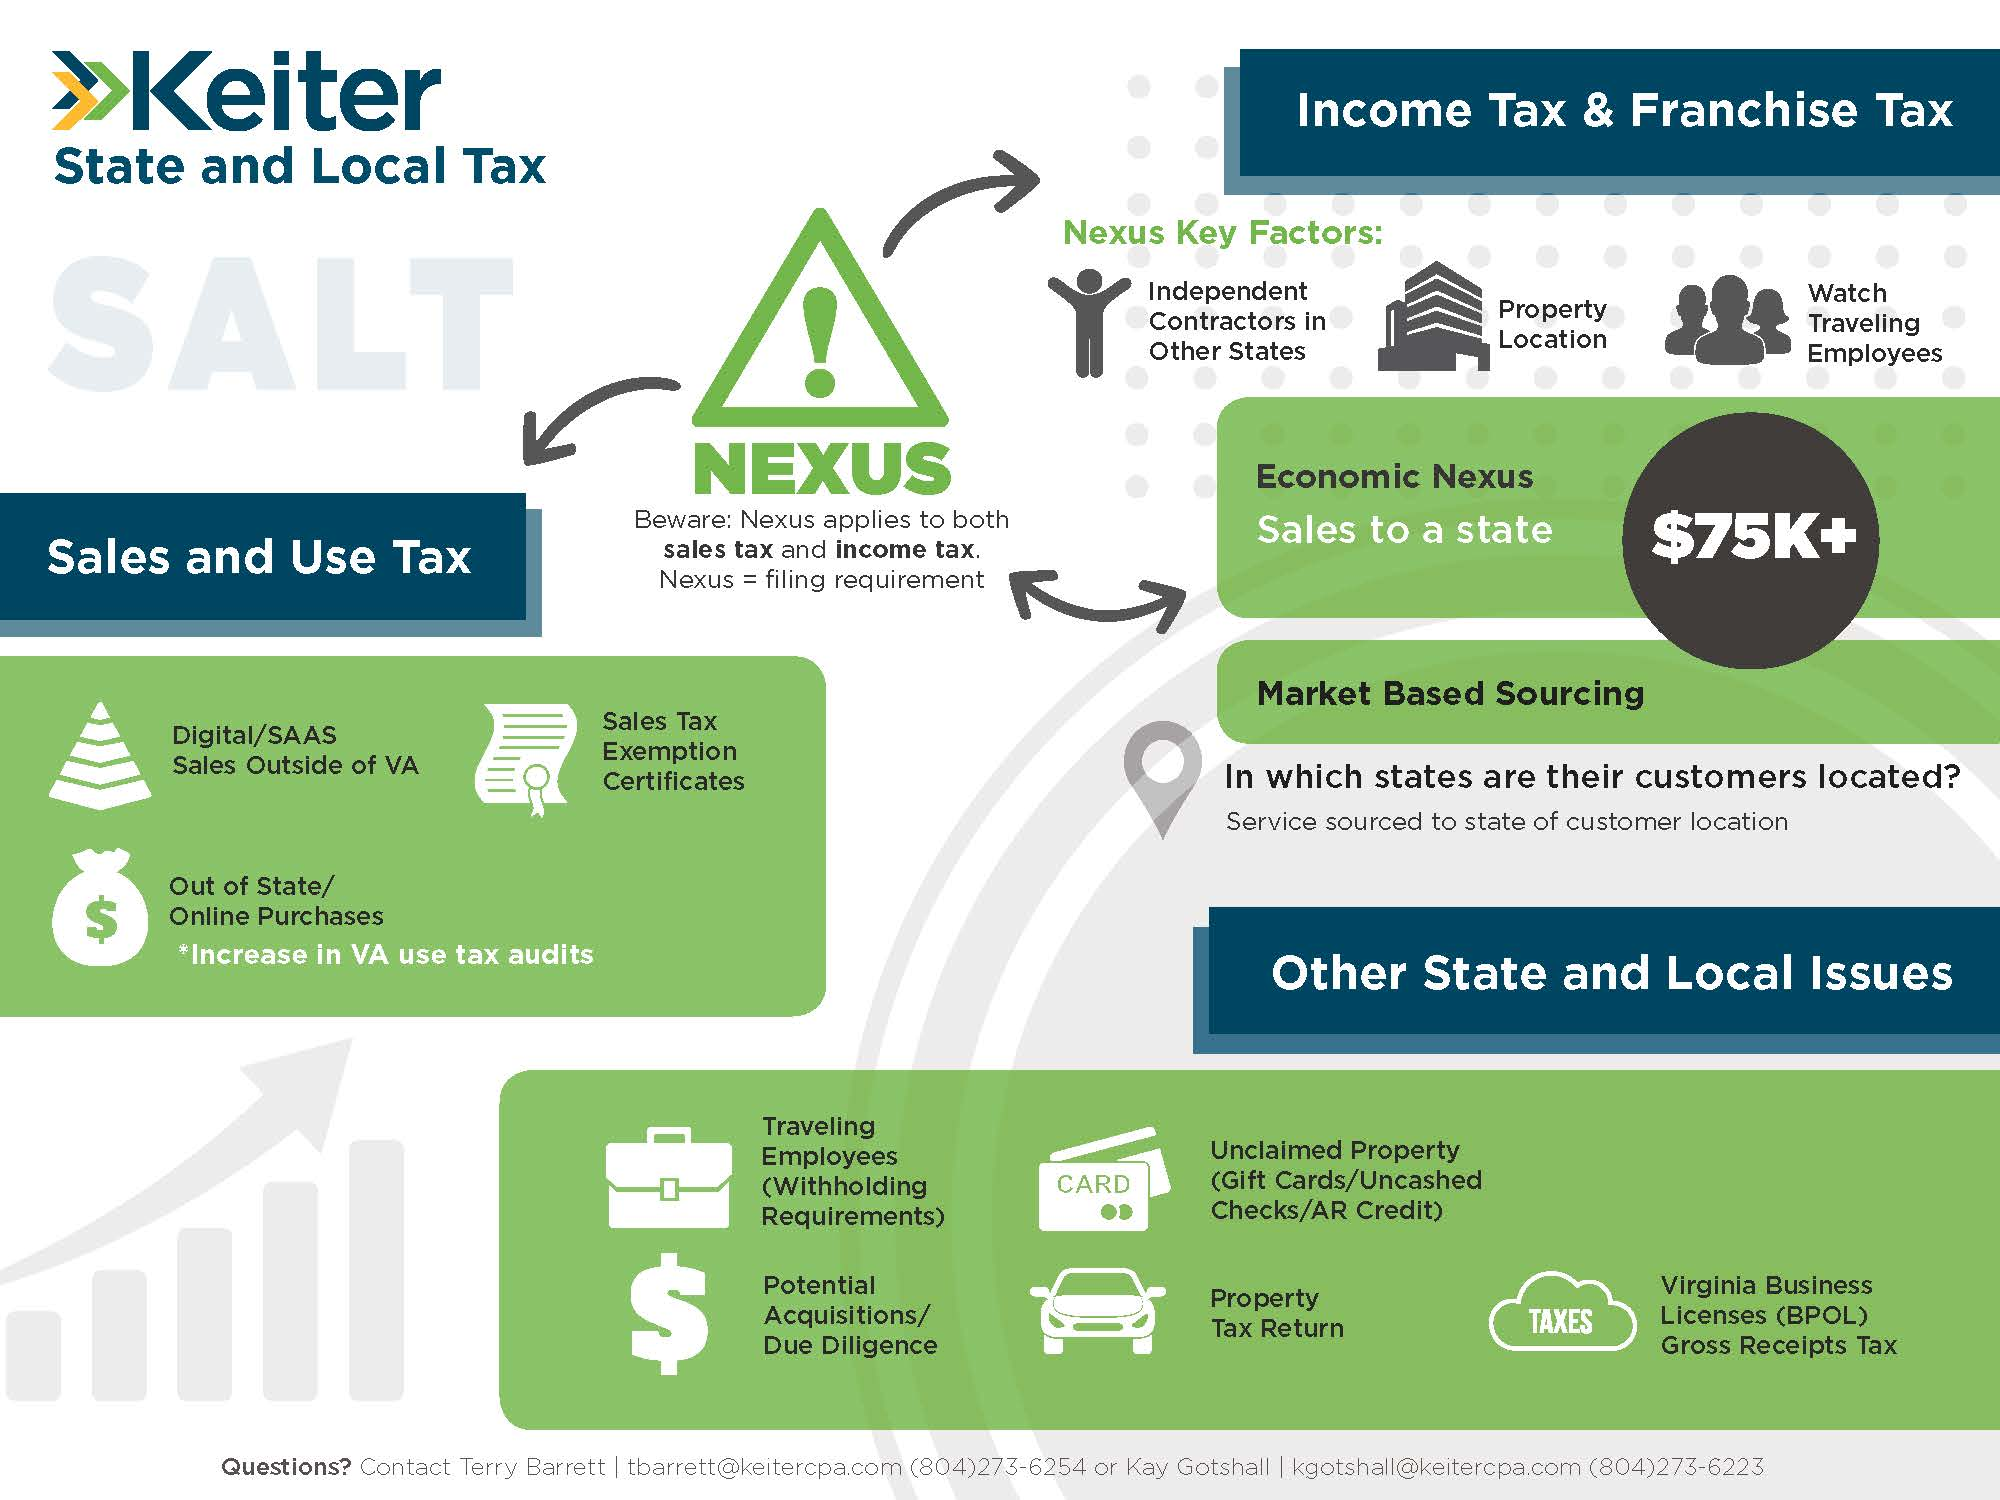 Keiter State and Local Tax | Nexus infographic